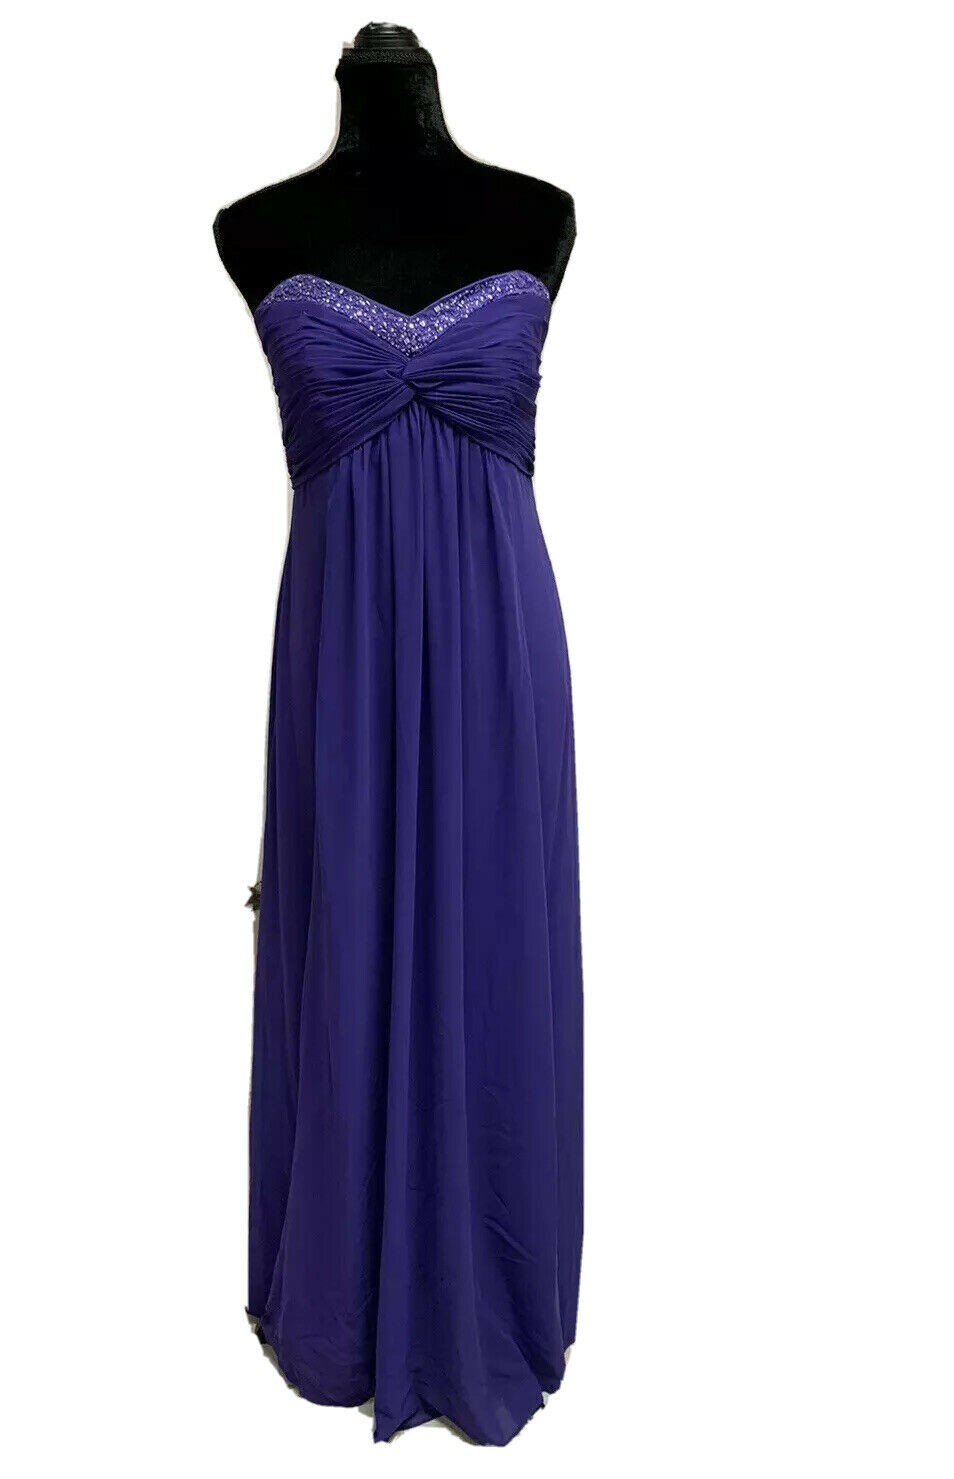 10 Purple Prom Party Homecoming Formal Pageant Evening Gown Bridesmaid Dress